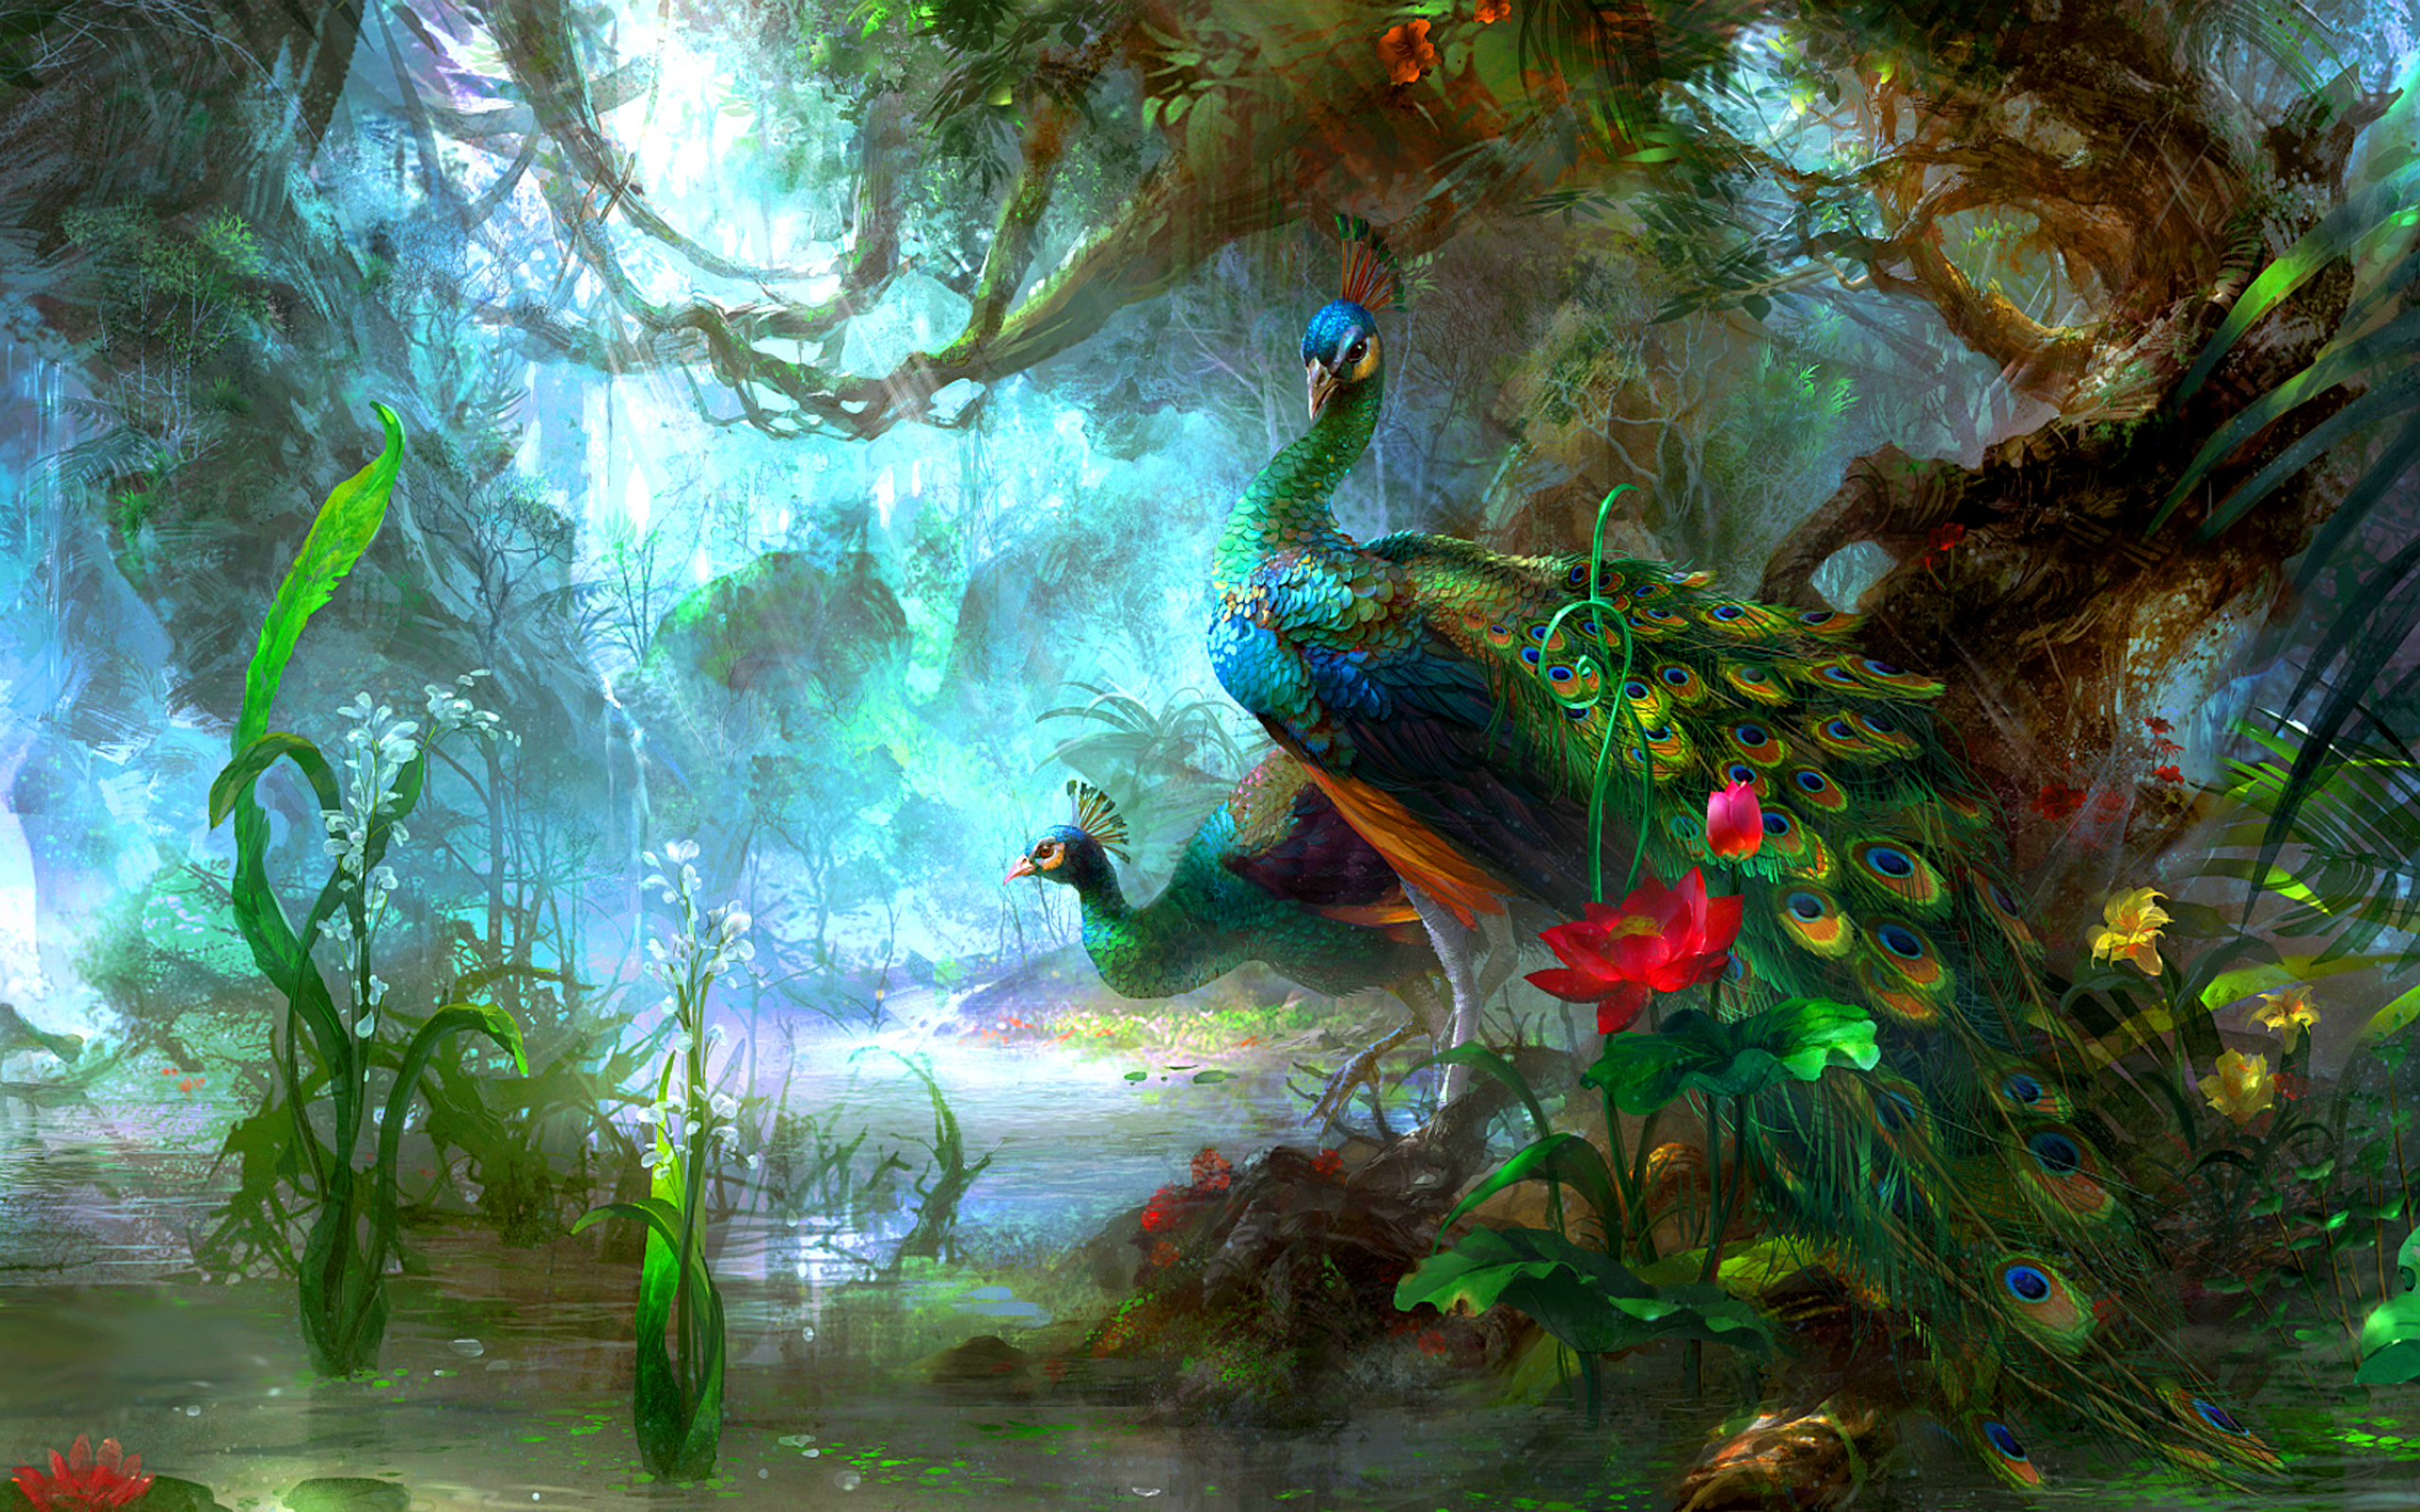 136 peacock hd wallpapers | background images - wallpaper abyss